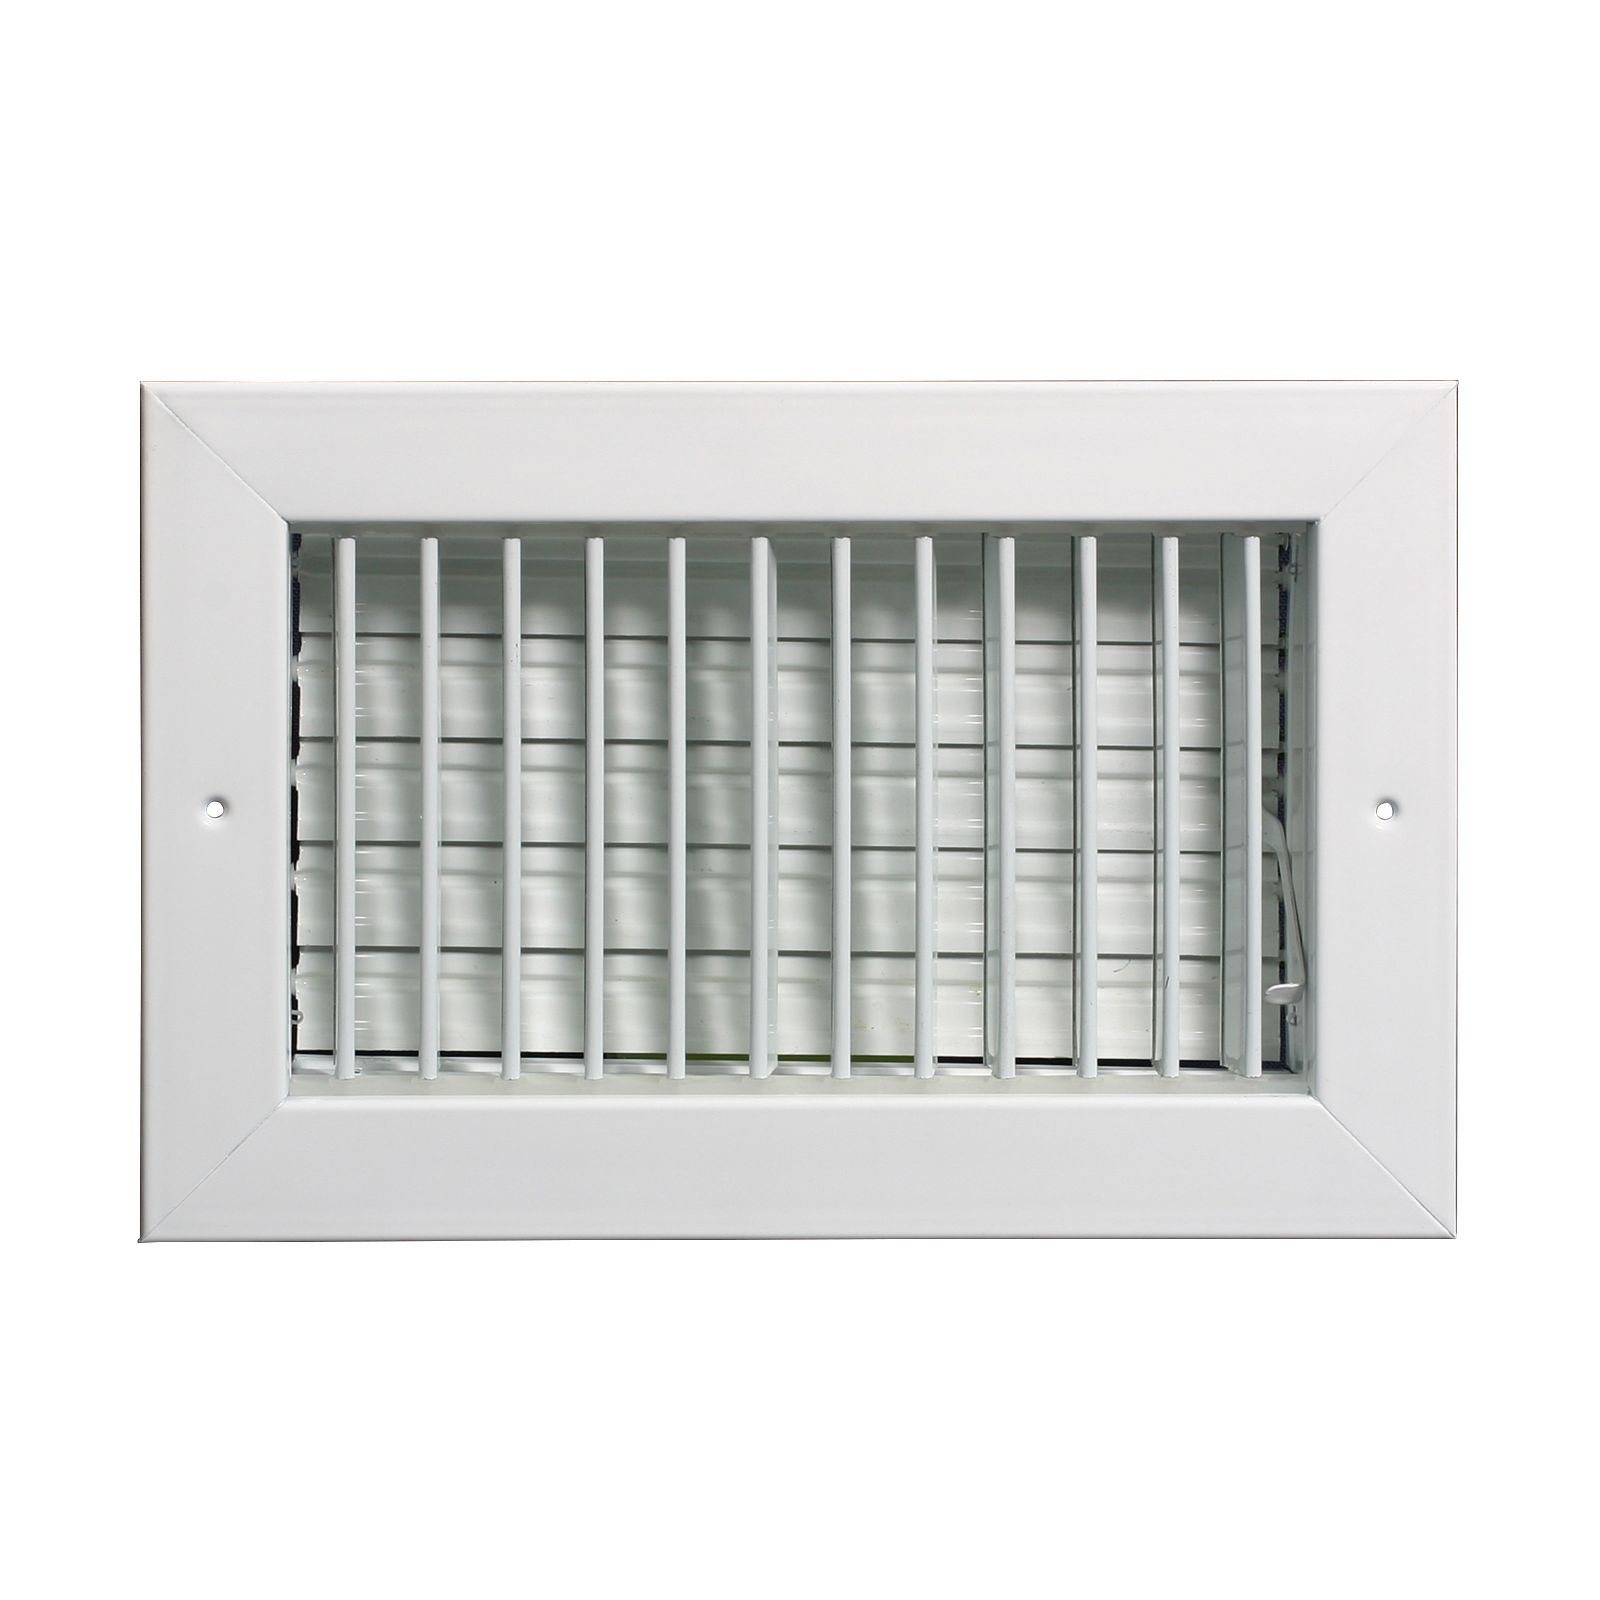 "Grille Tech VM1404 - Aluminum Vertical Blade Sidewall Register, Multi-Shutter Damper 14"" X 4"" White"